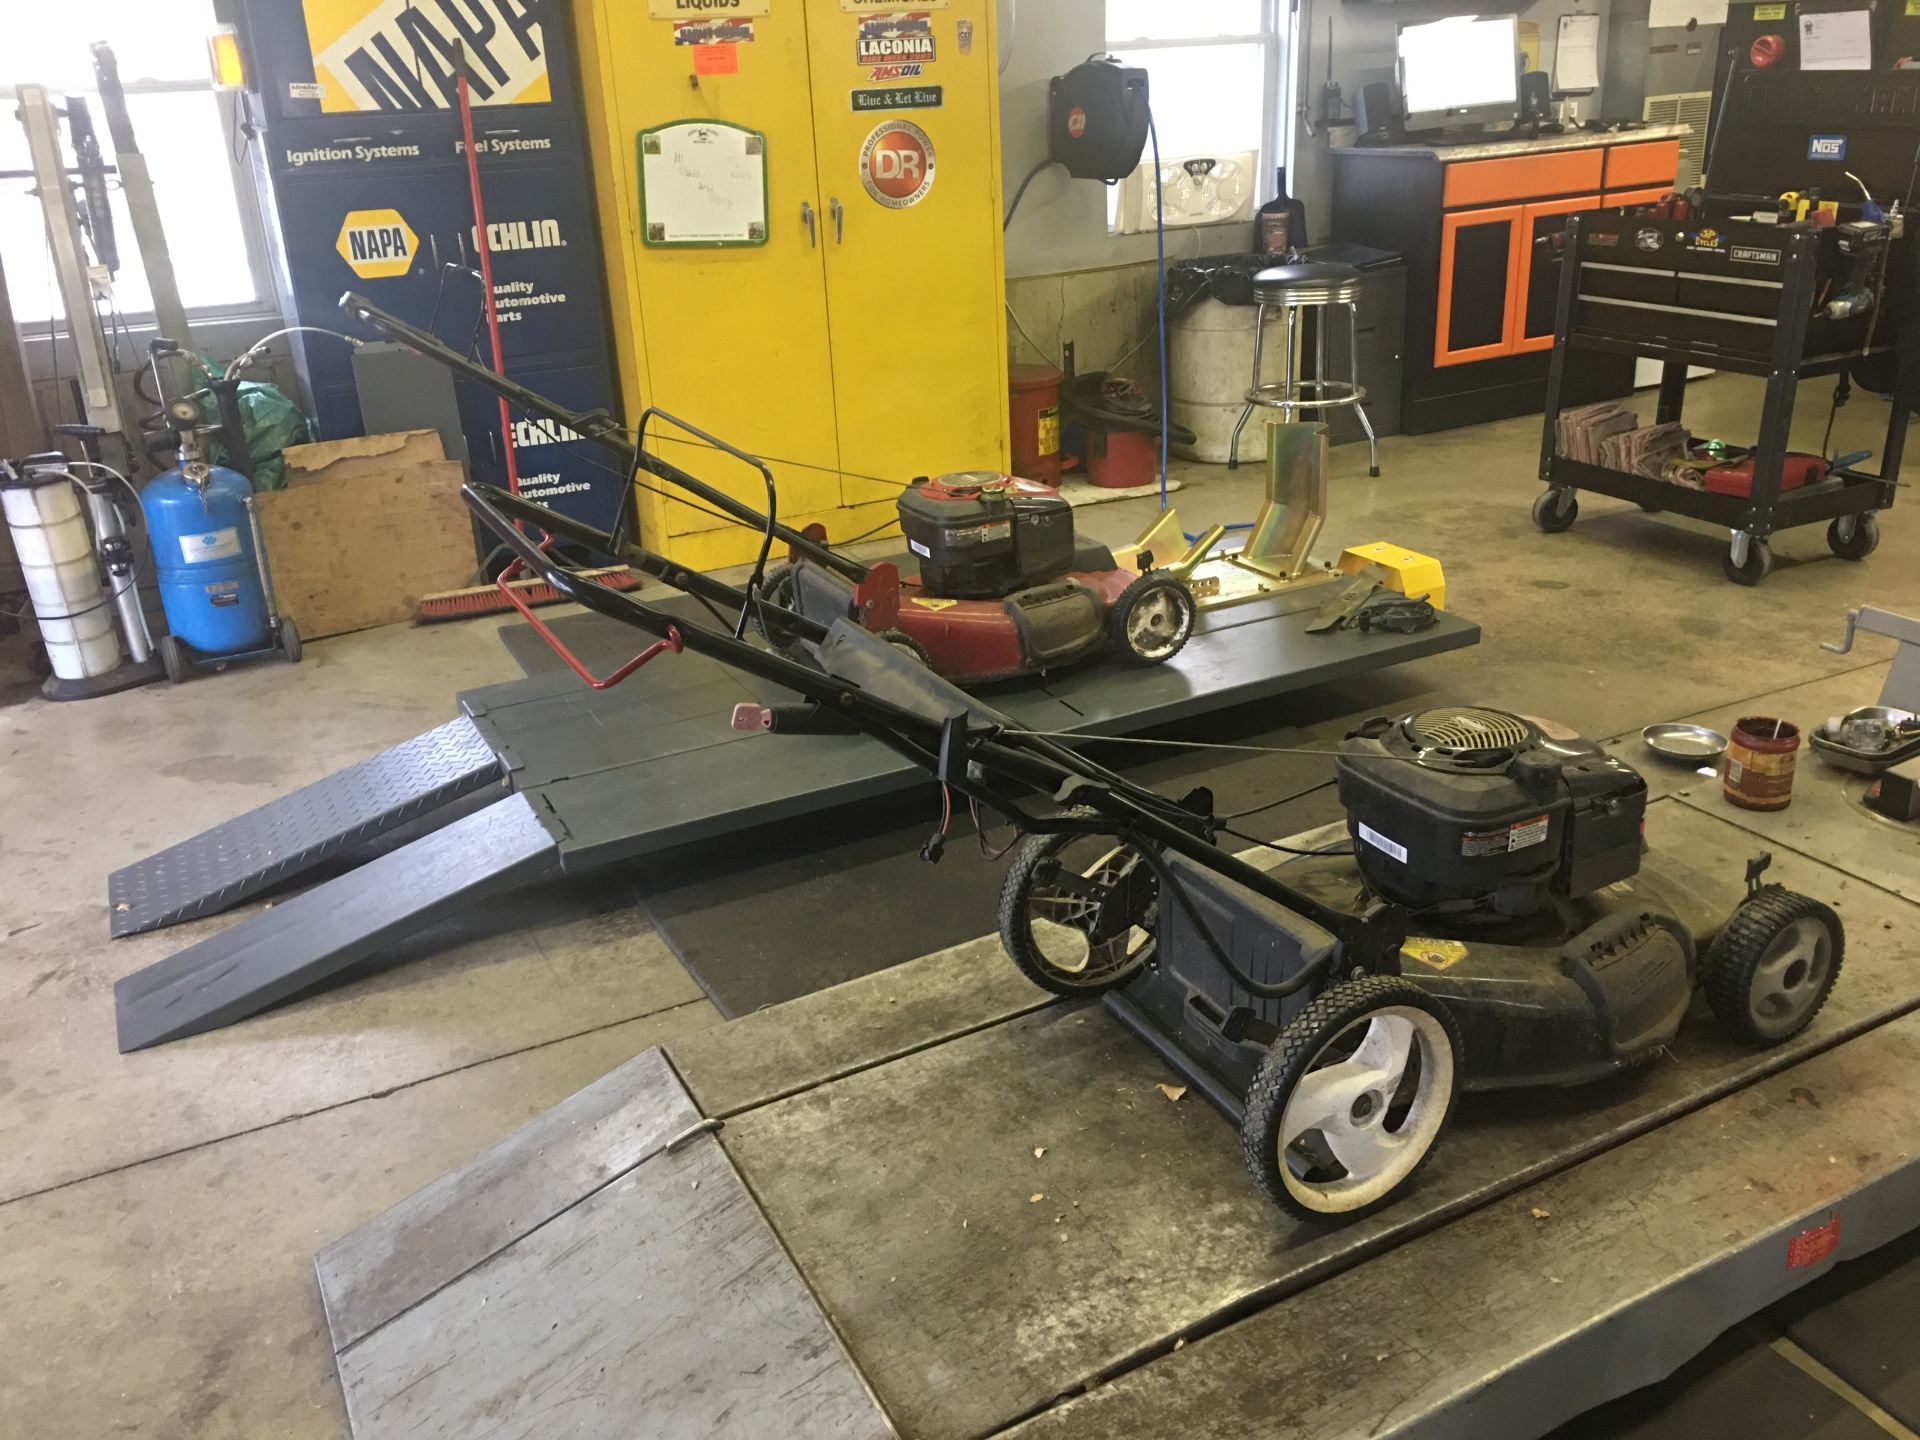 lsmall engine repair, dover nh, rochester nh, somerworth nh, snowblower, lawn mower, generator, small engine